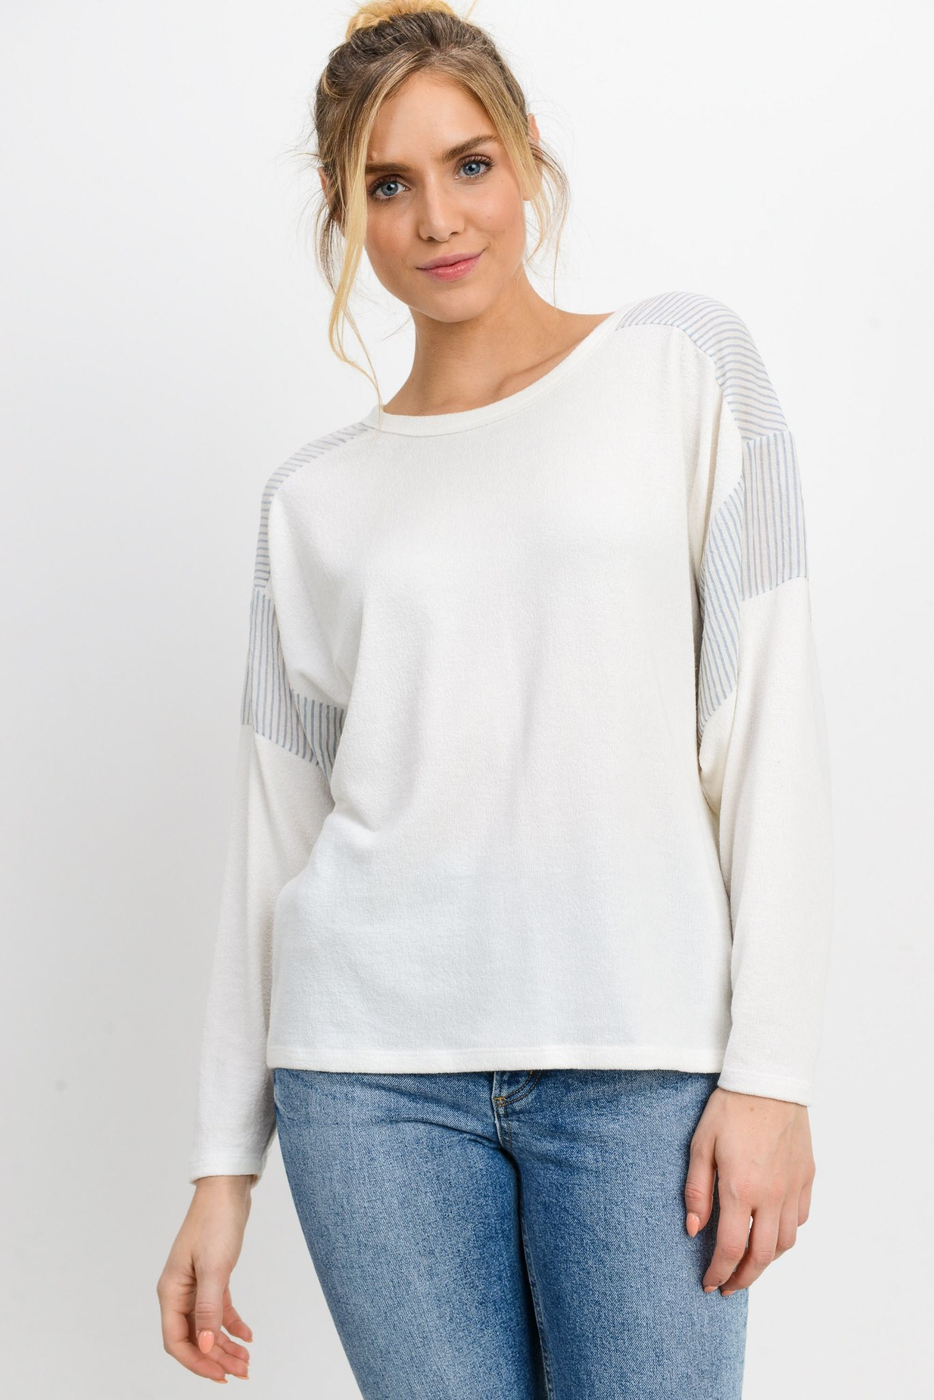 Loop Jersey Dolman Top - orangeshine.com